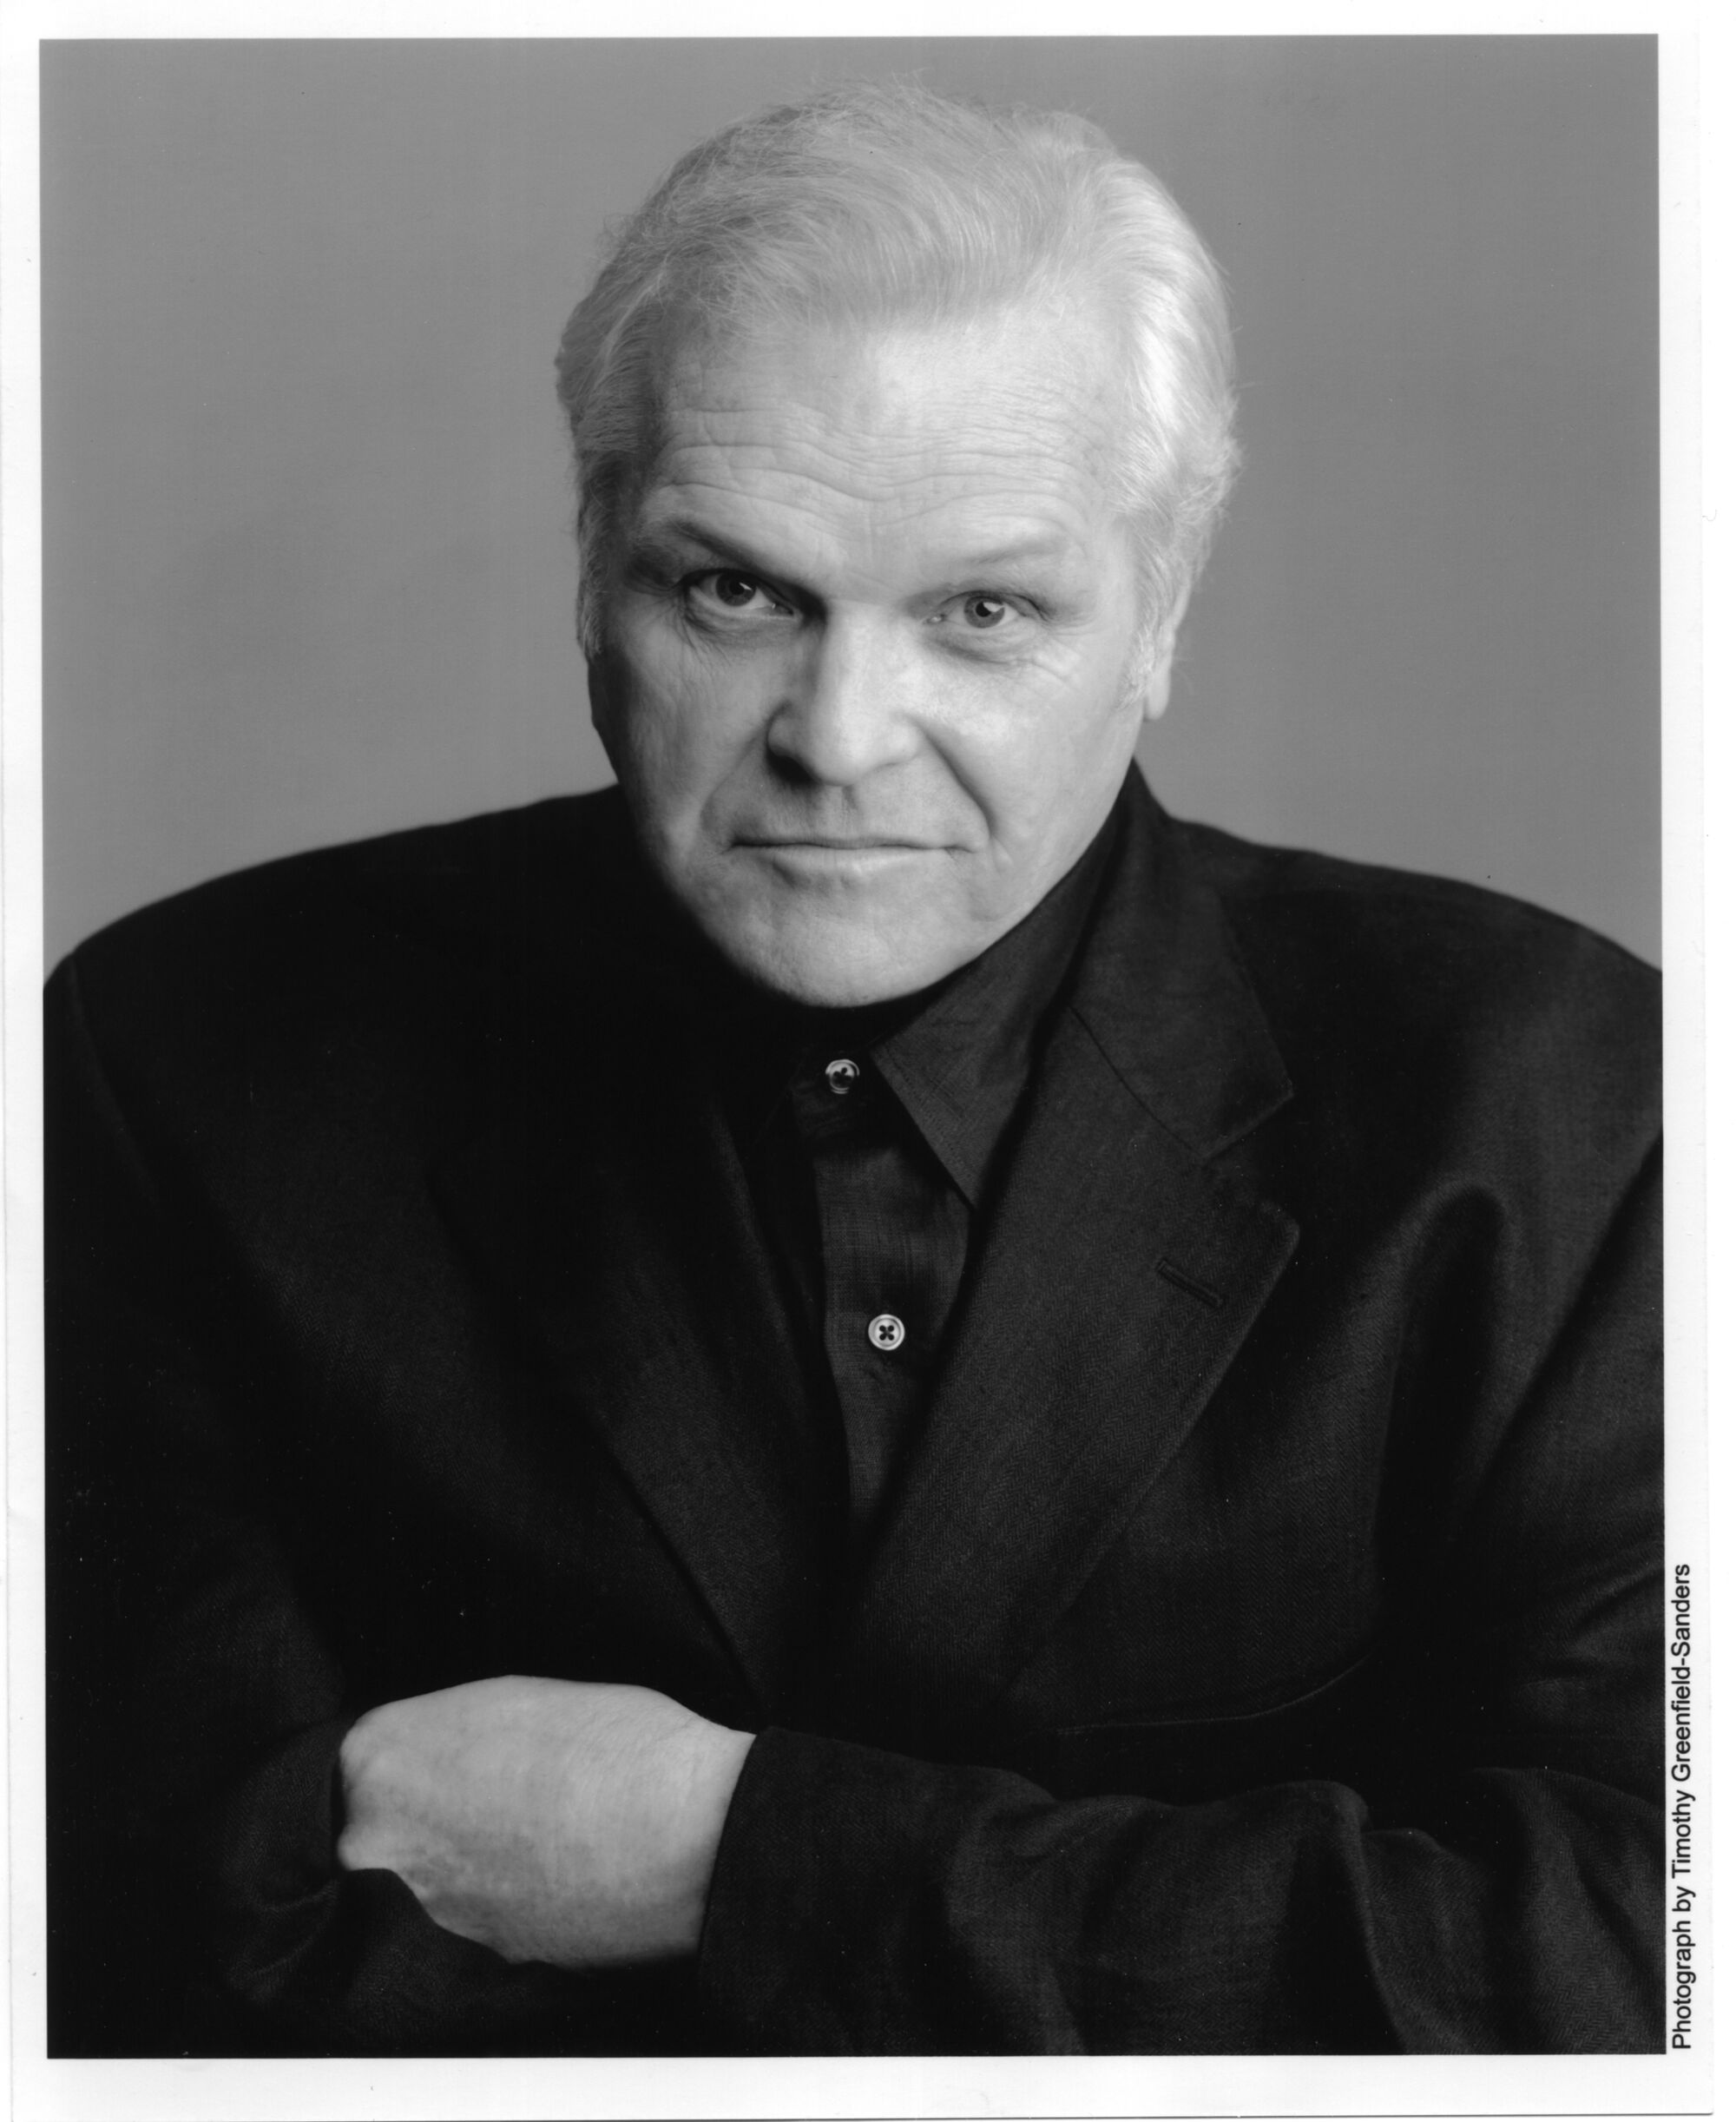 brian dennehy movies list